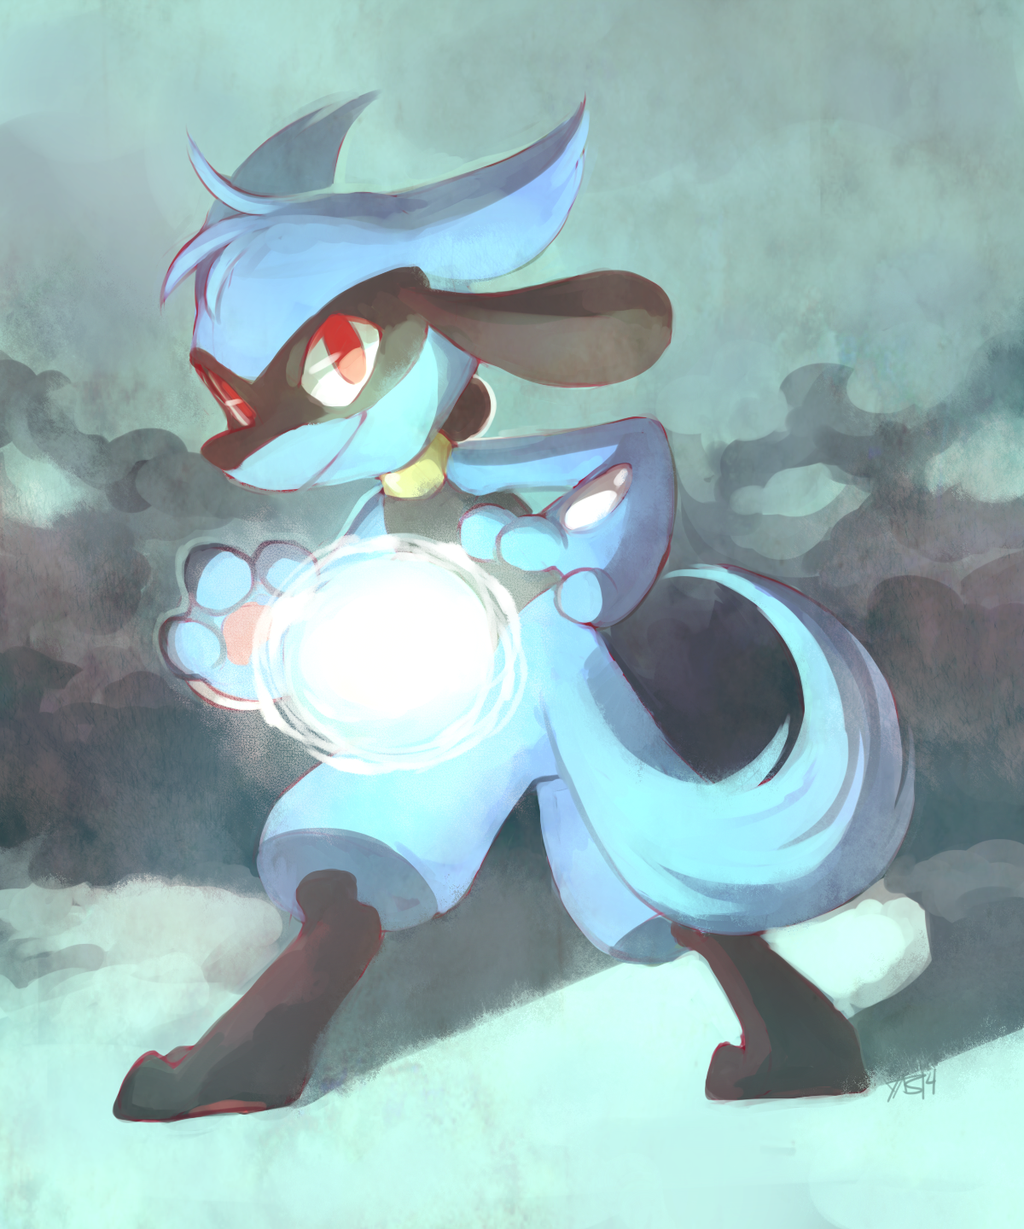 When does riolu learn aura sphere - answers.com